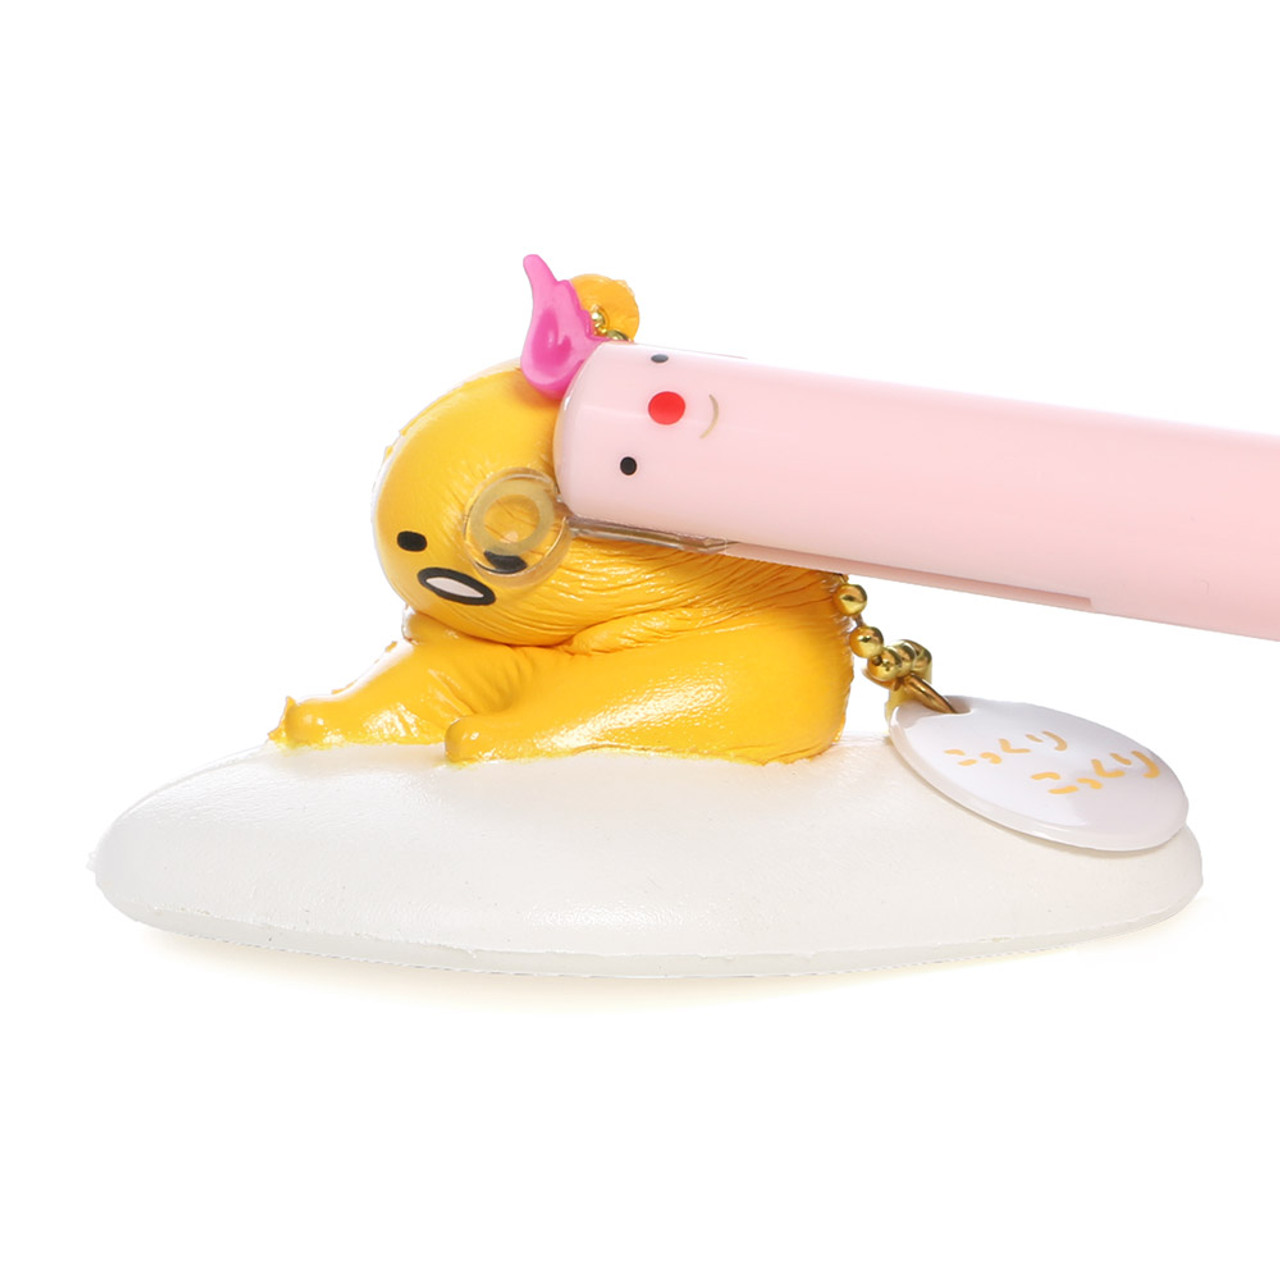 Sanrio Gudetama Lazy Egg Mascot Sitting Model Soft Squishy Charms Cellphone Charms ( Squeezing Mode )